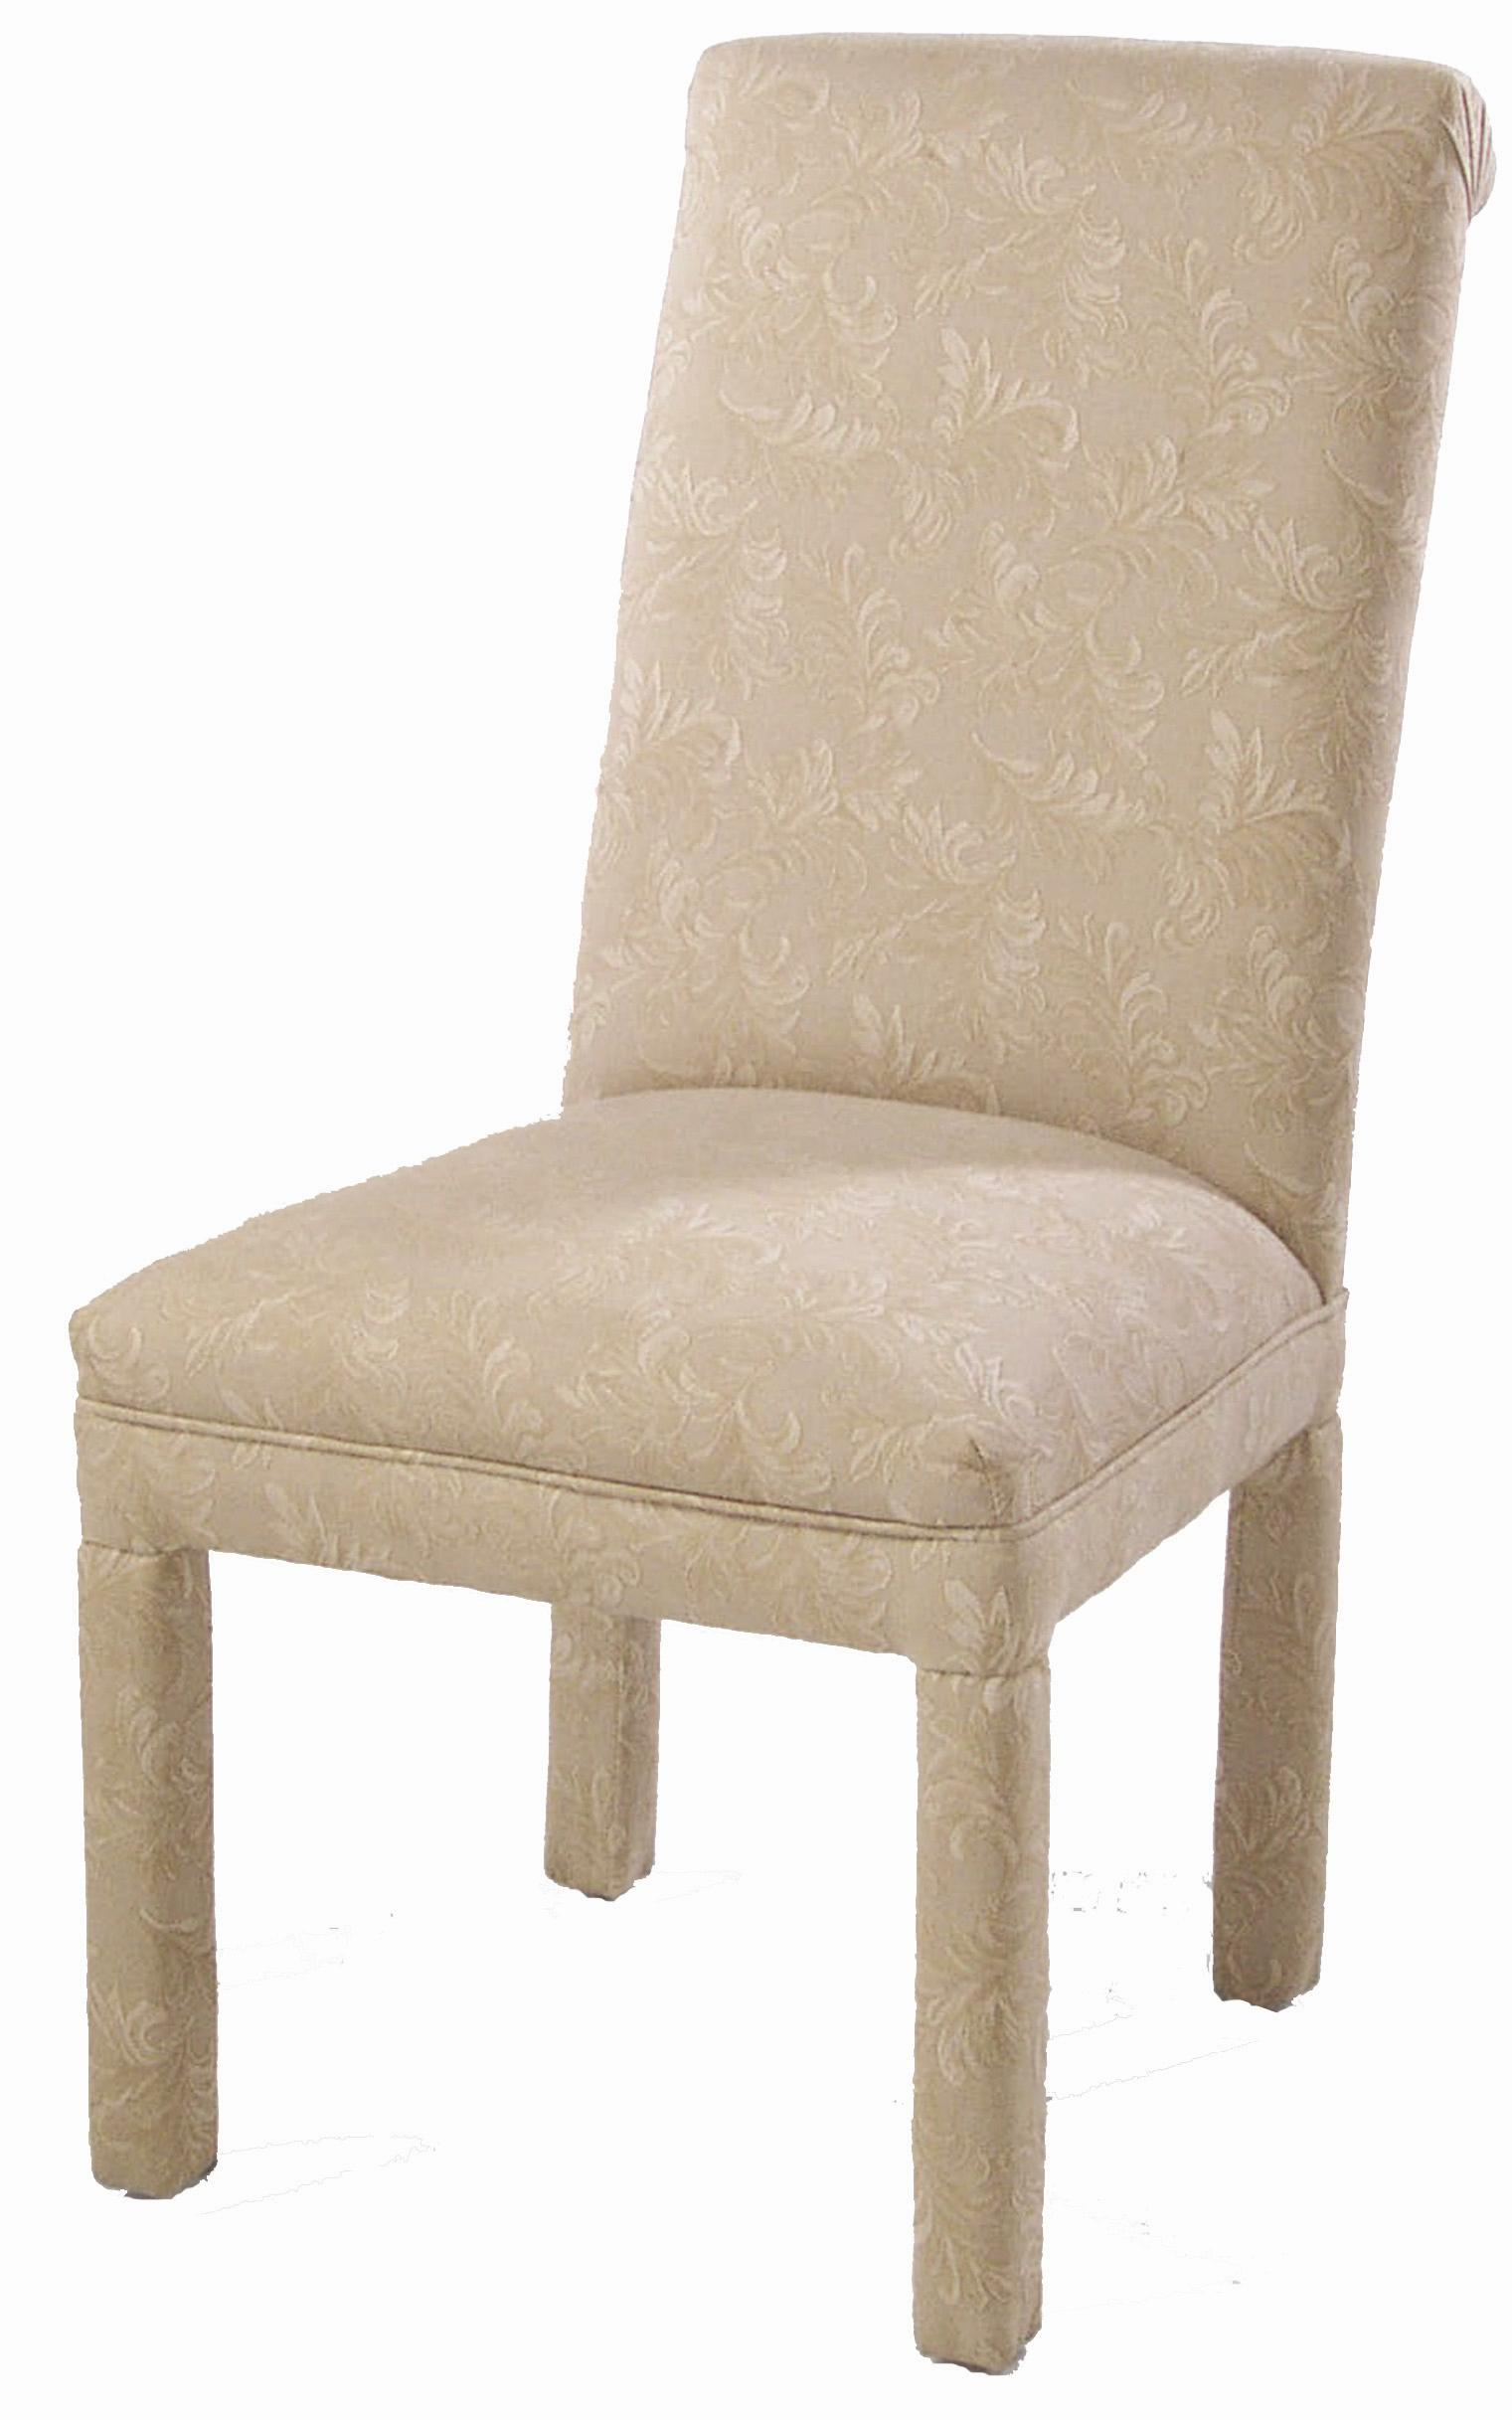 Upholstered Dining Chairs Upholstered Dining Chair By Cmi Wolf And Gardiner Wolf